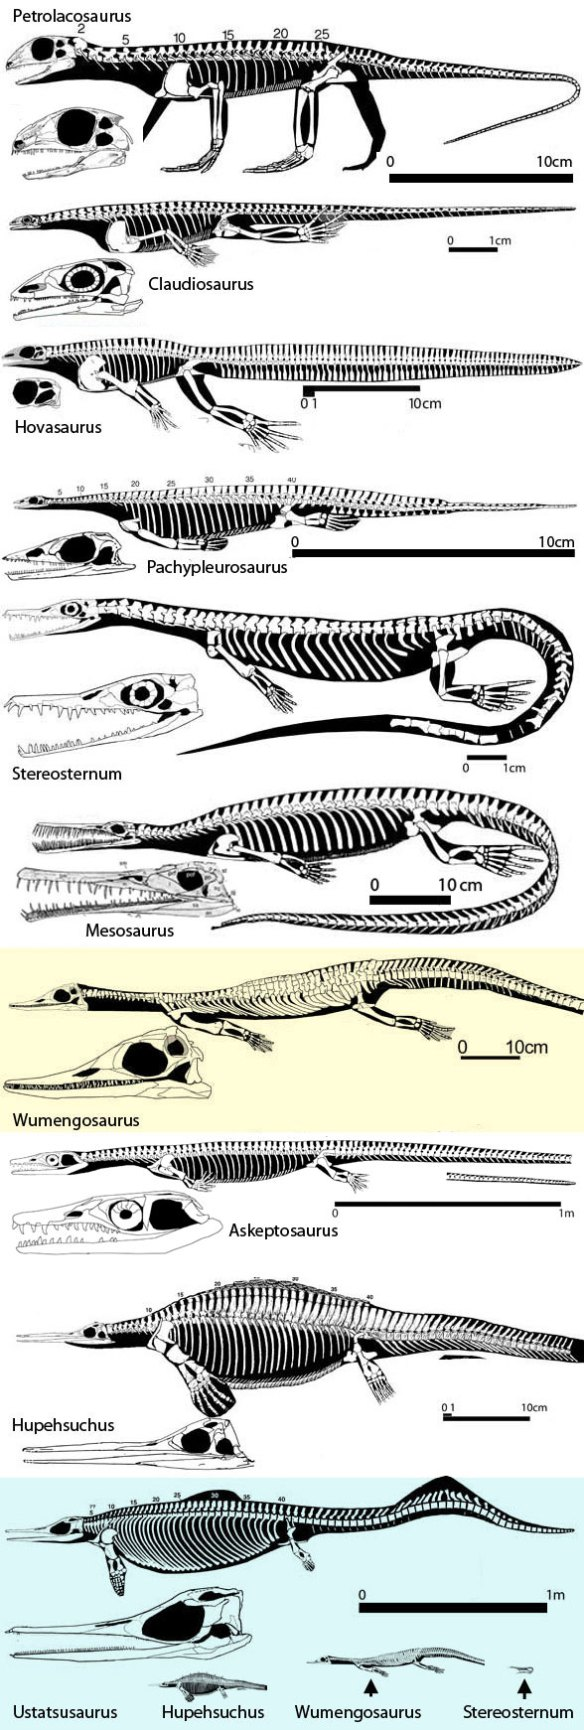 Figure 3. The sisters of Mesosaurus from the basal diapsid, Petrolacosaurus to the basal ichthyosaur, Utatsusaurus.